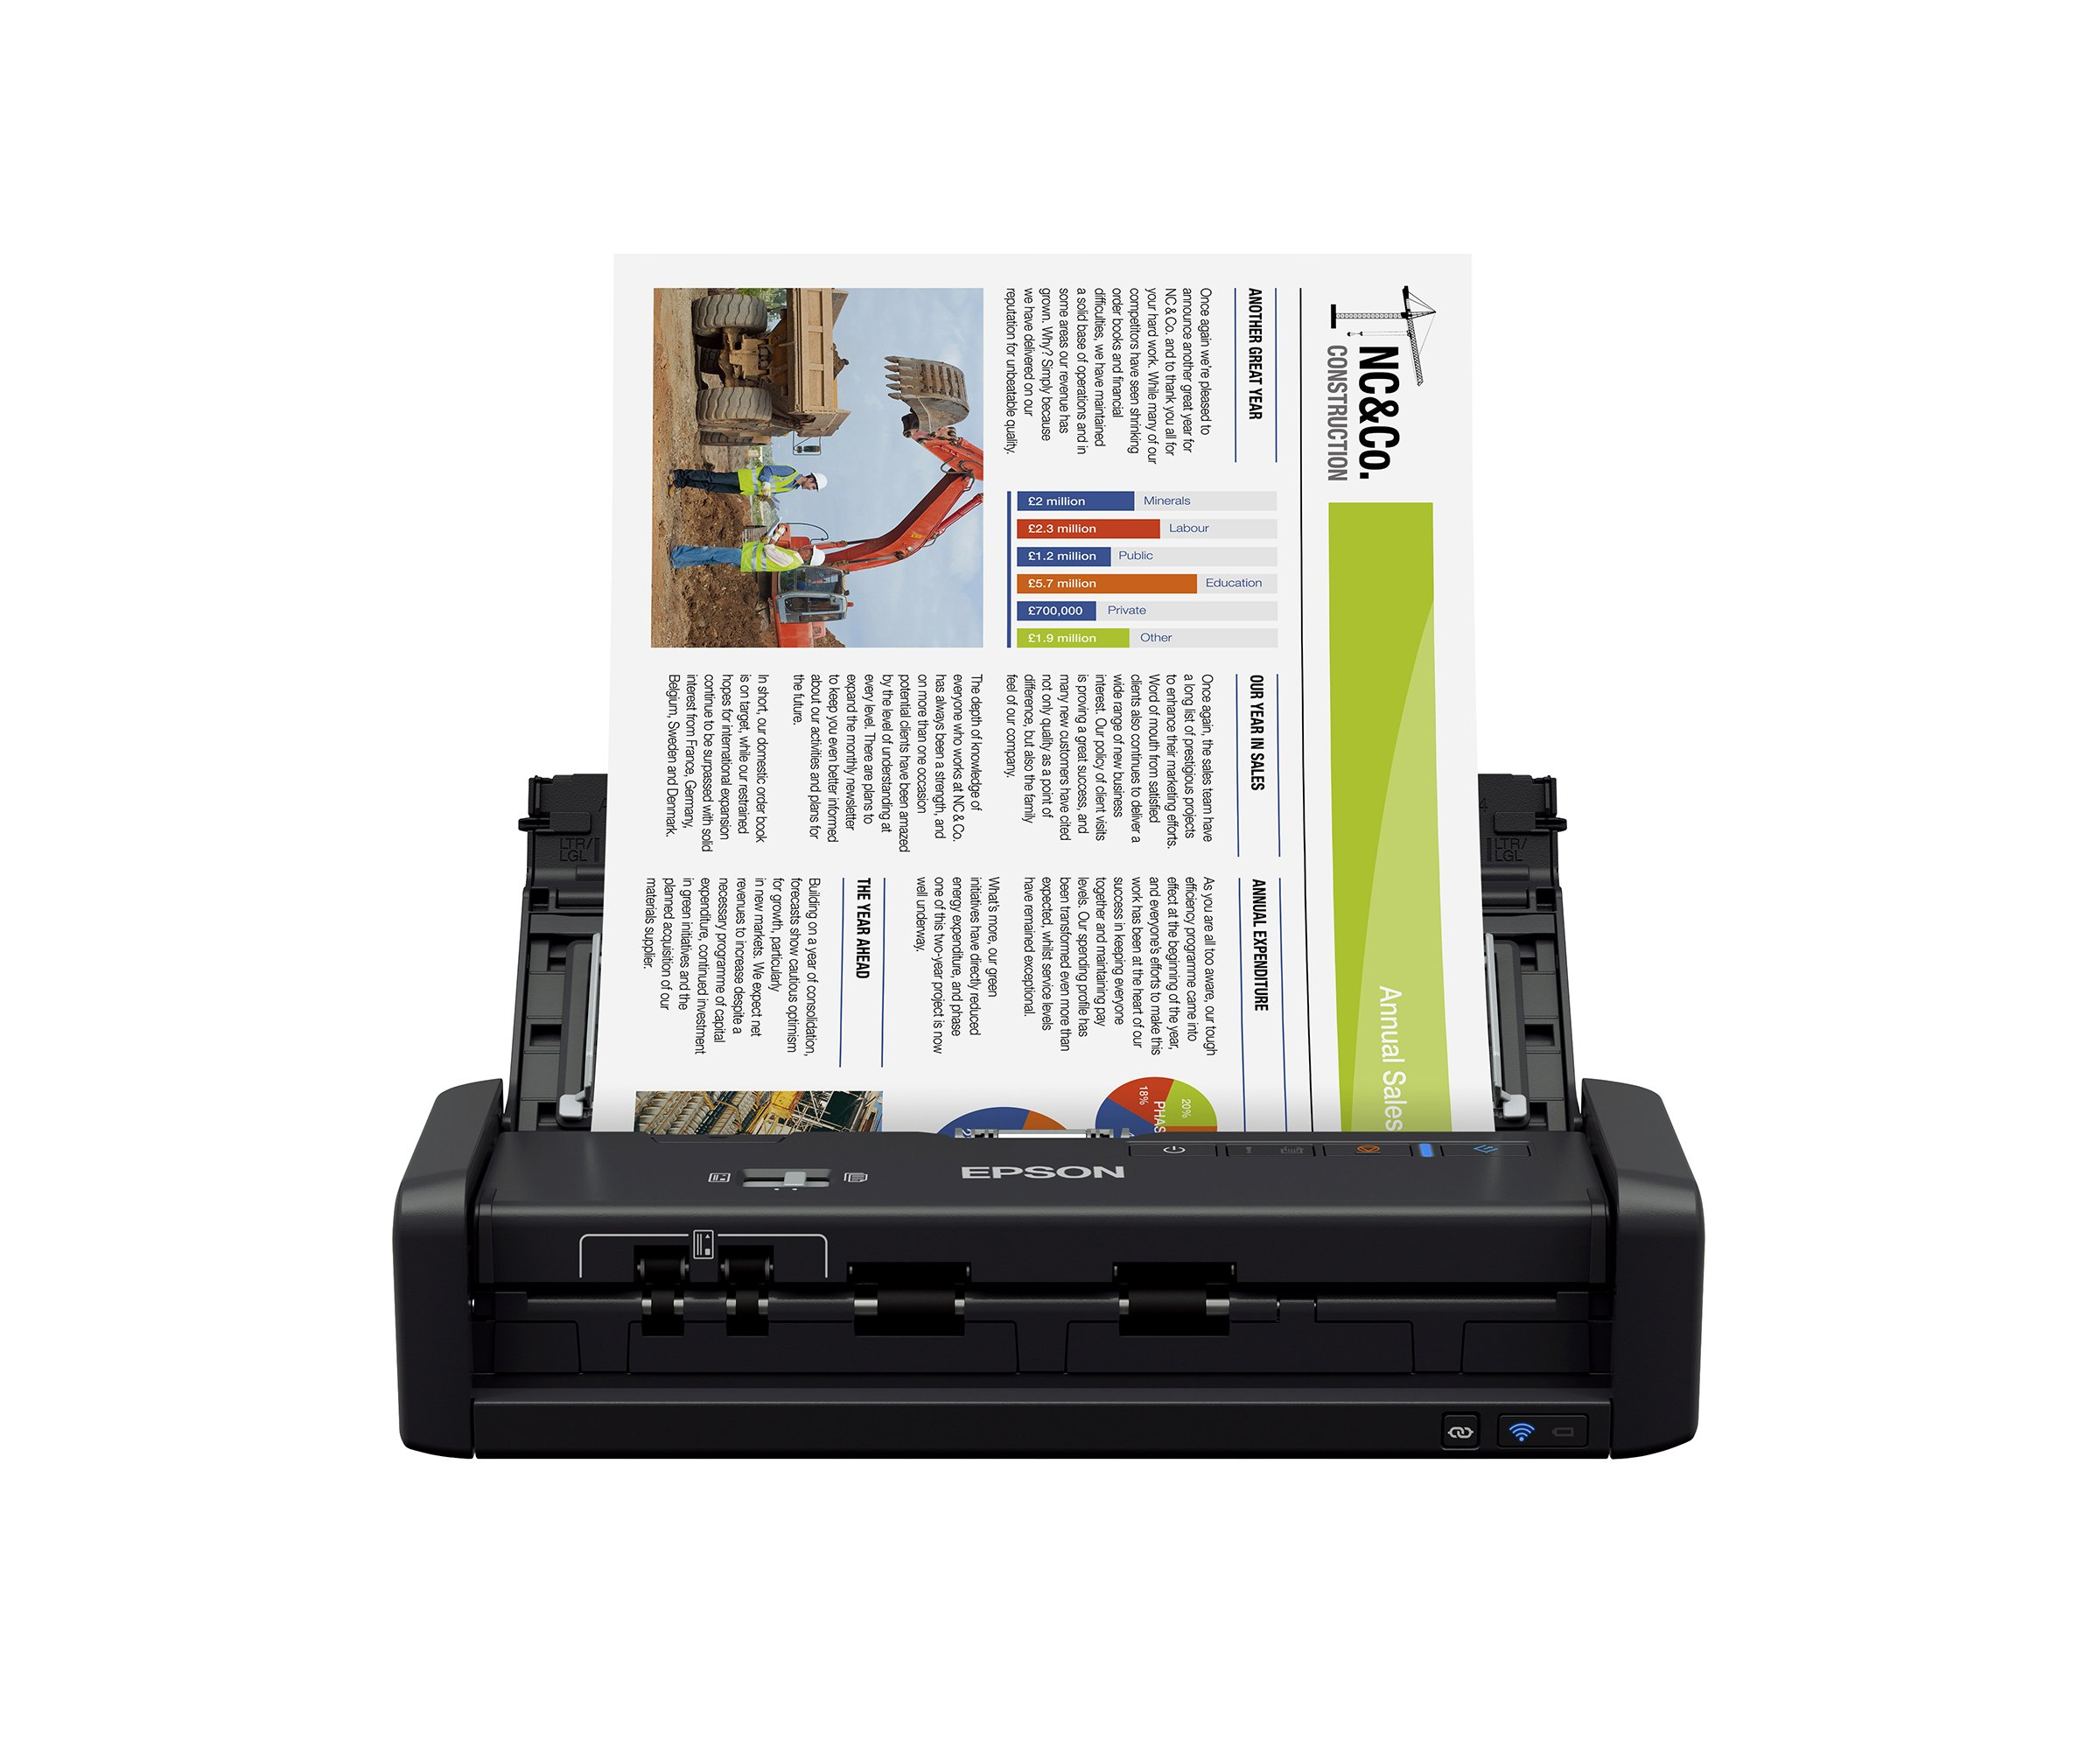 Epson Workforce ES-300W Wireless Color Portable Document Scanner with ADF for PC and Mac, Sheet-fed and Duplex Scanning by Epson